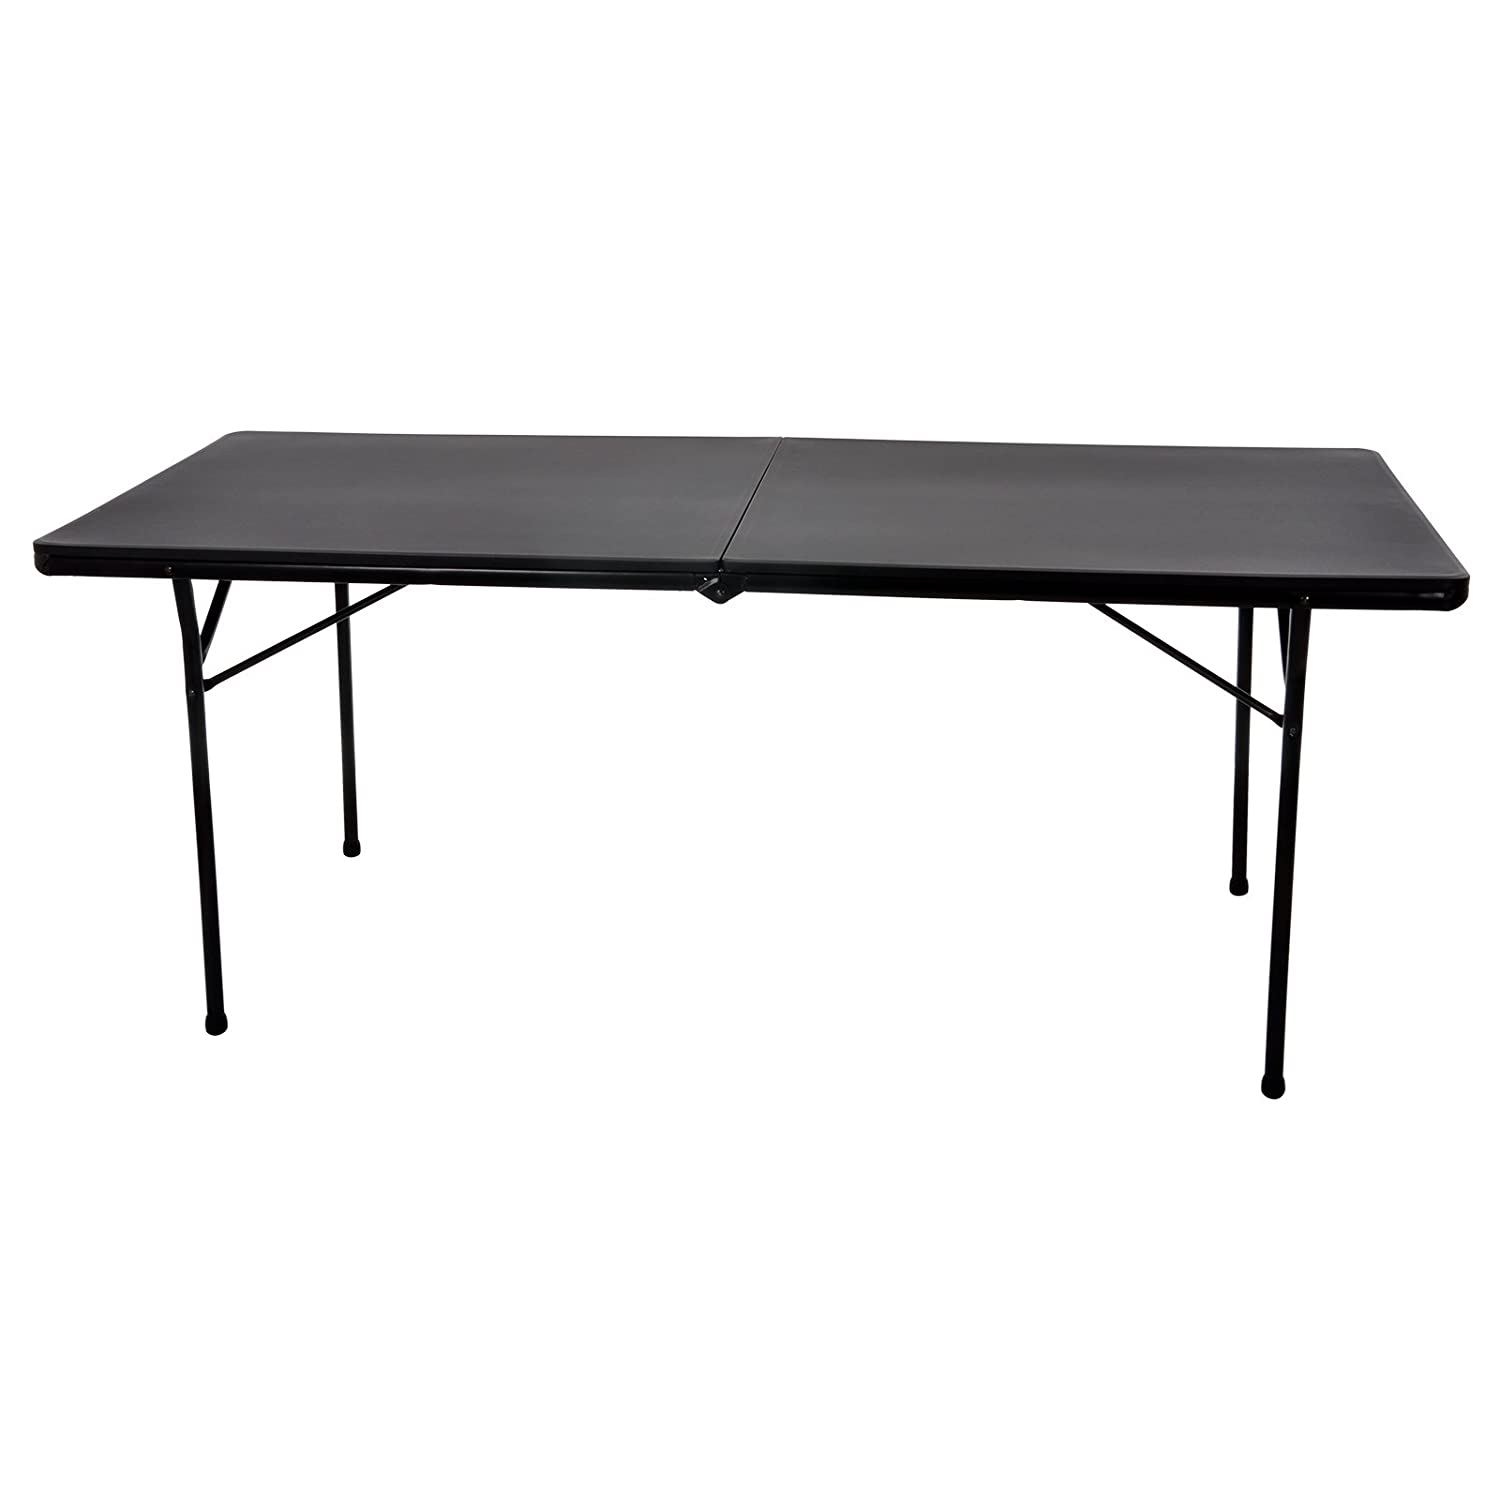 Azuma 6ft Heavy Duty Folding Black Trestle Table Max Load 300 Kilogram BBQ Camping Dining DIY Market Vacuum Moulded Top Locking Legs Portable Indoor Outdoor Use XS-Stock.com Ltd